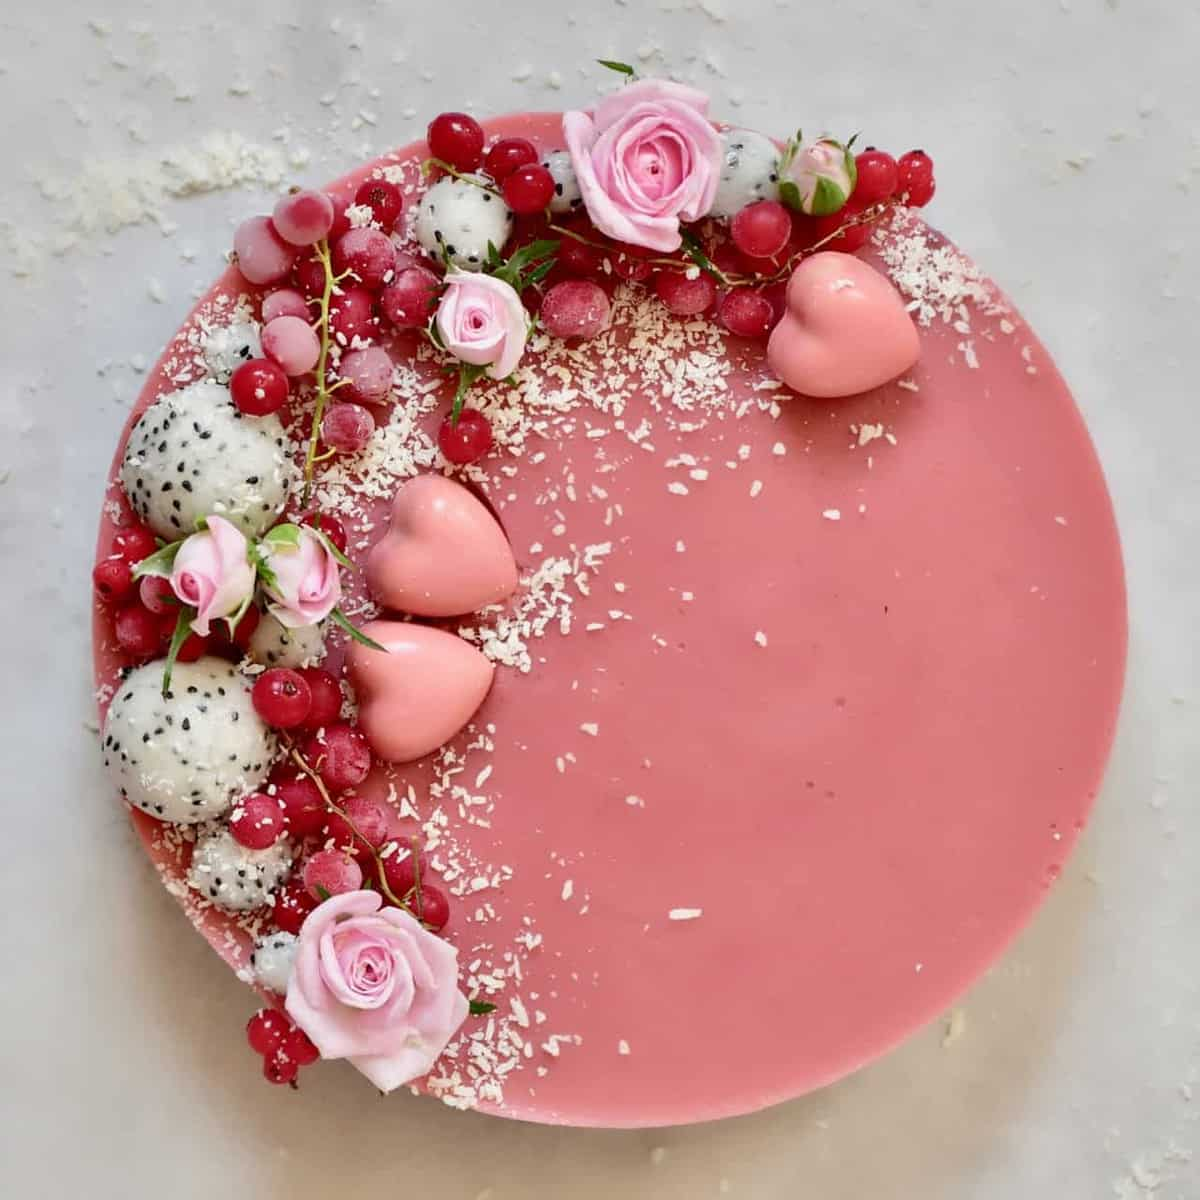 two-layered coconut and strawberry tart topped with coconut, dragon fruit, red berries and edible roses